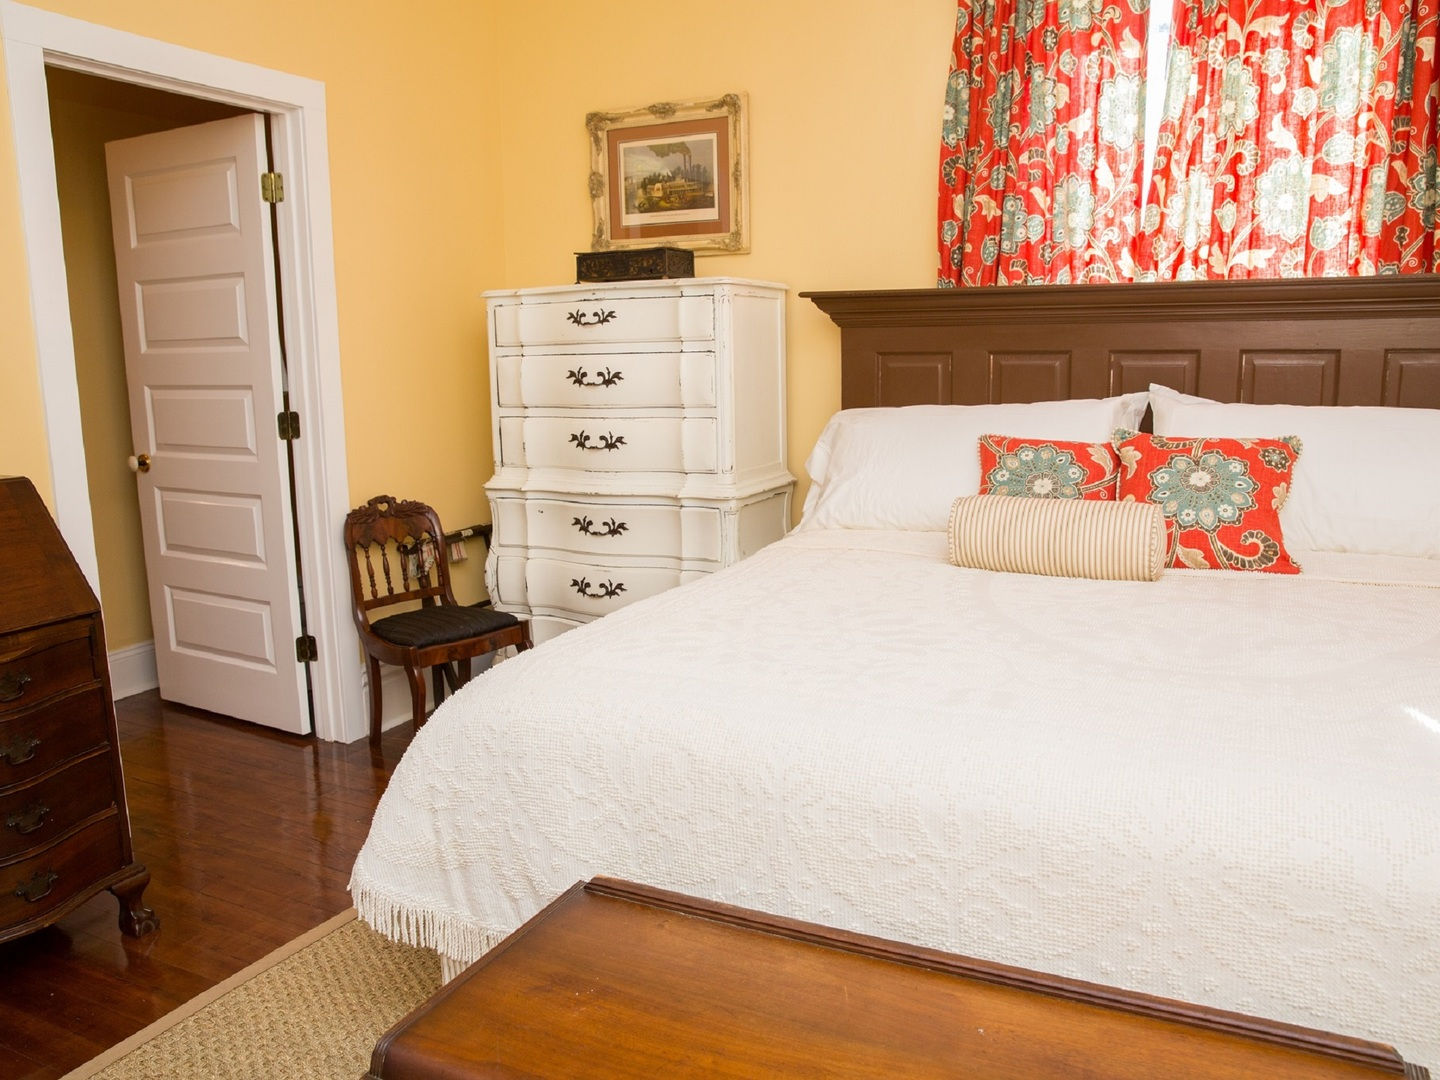 A bedroom with a bed and desk in a room at The Guest House at Gulfport Landing.